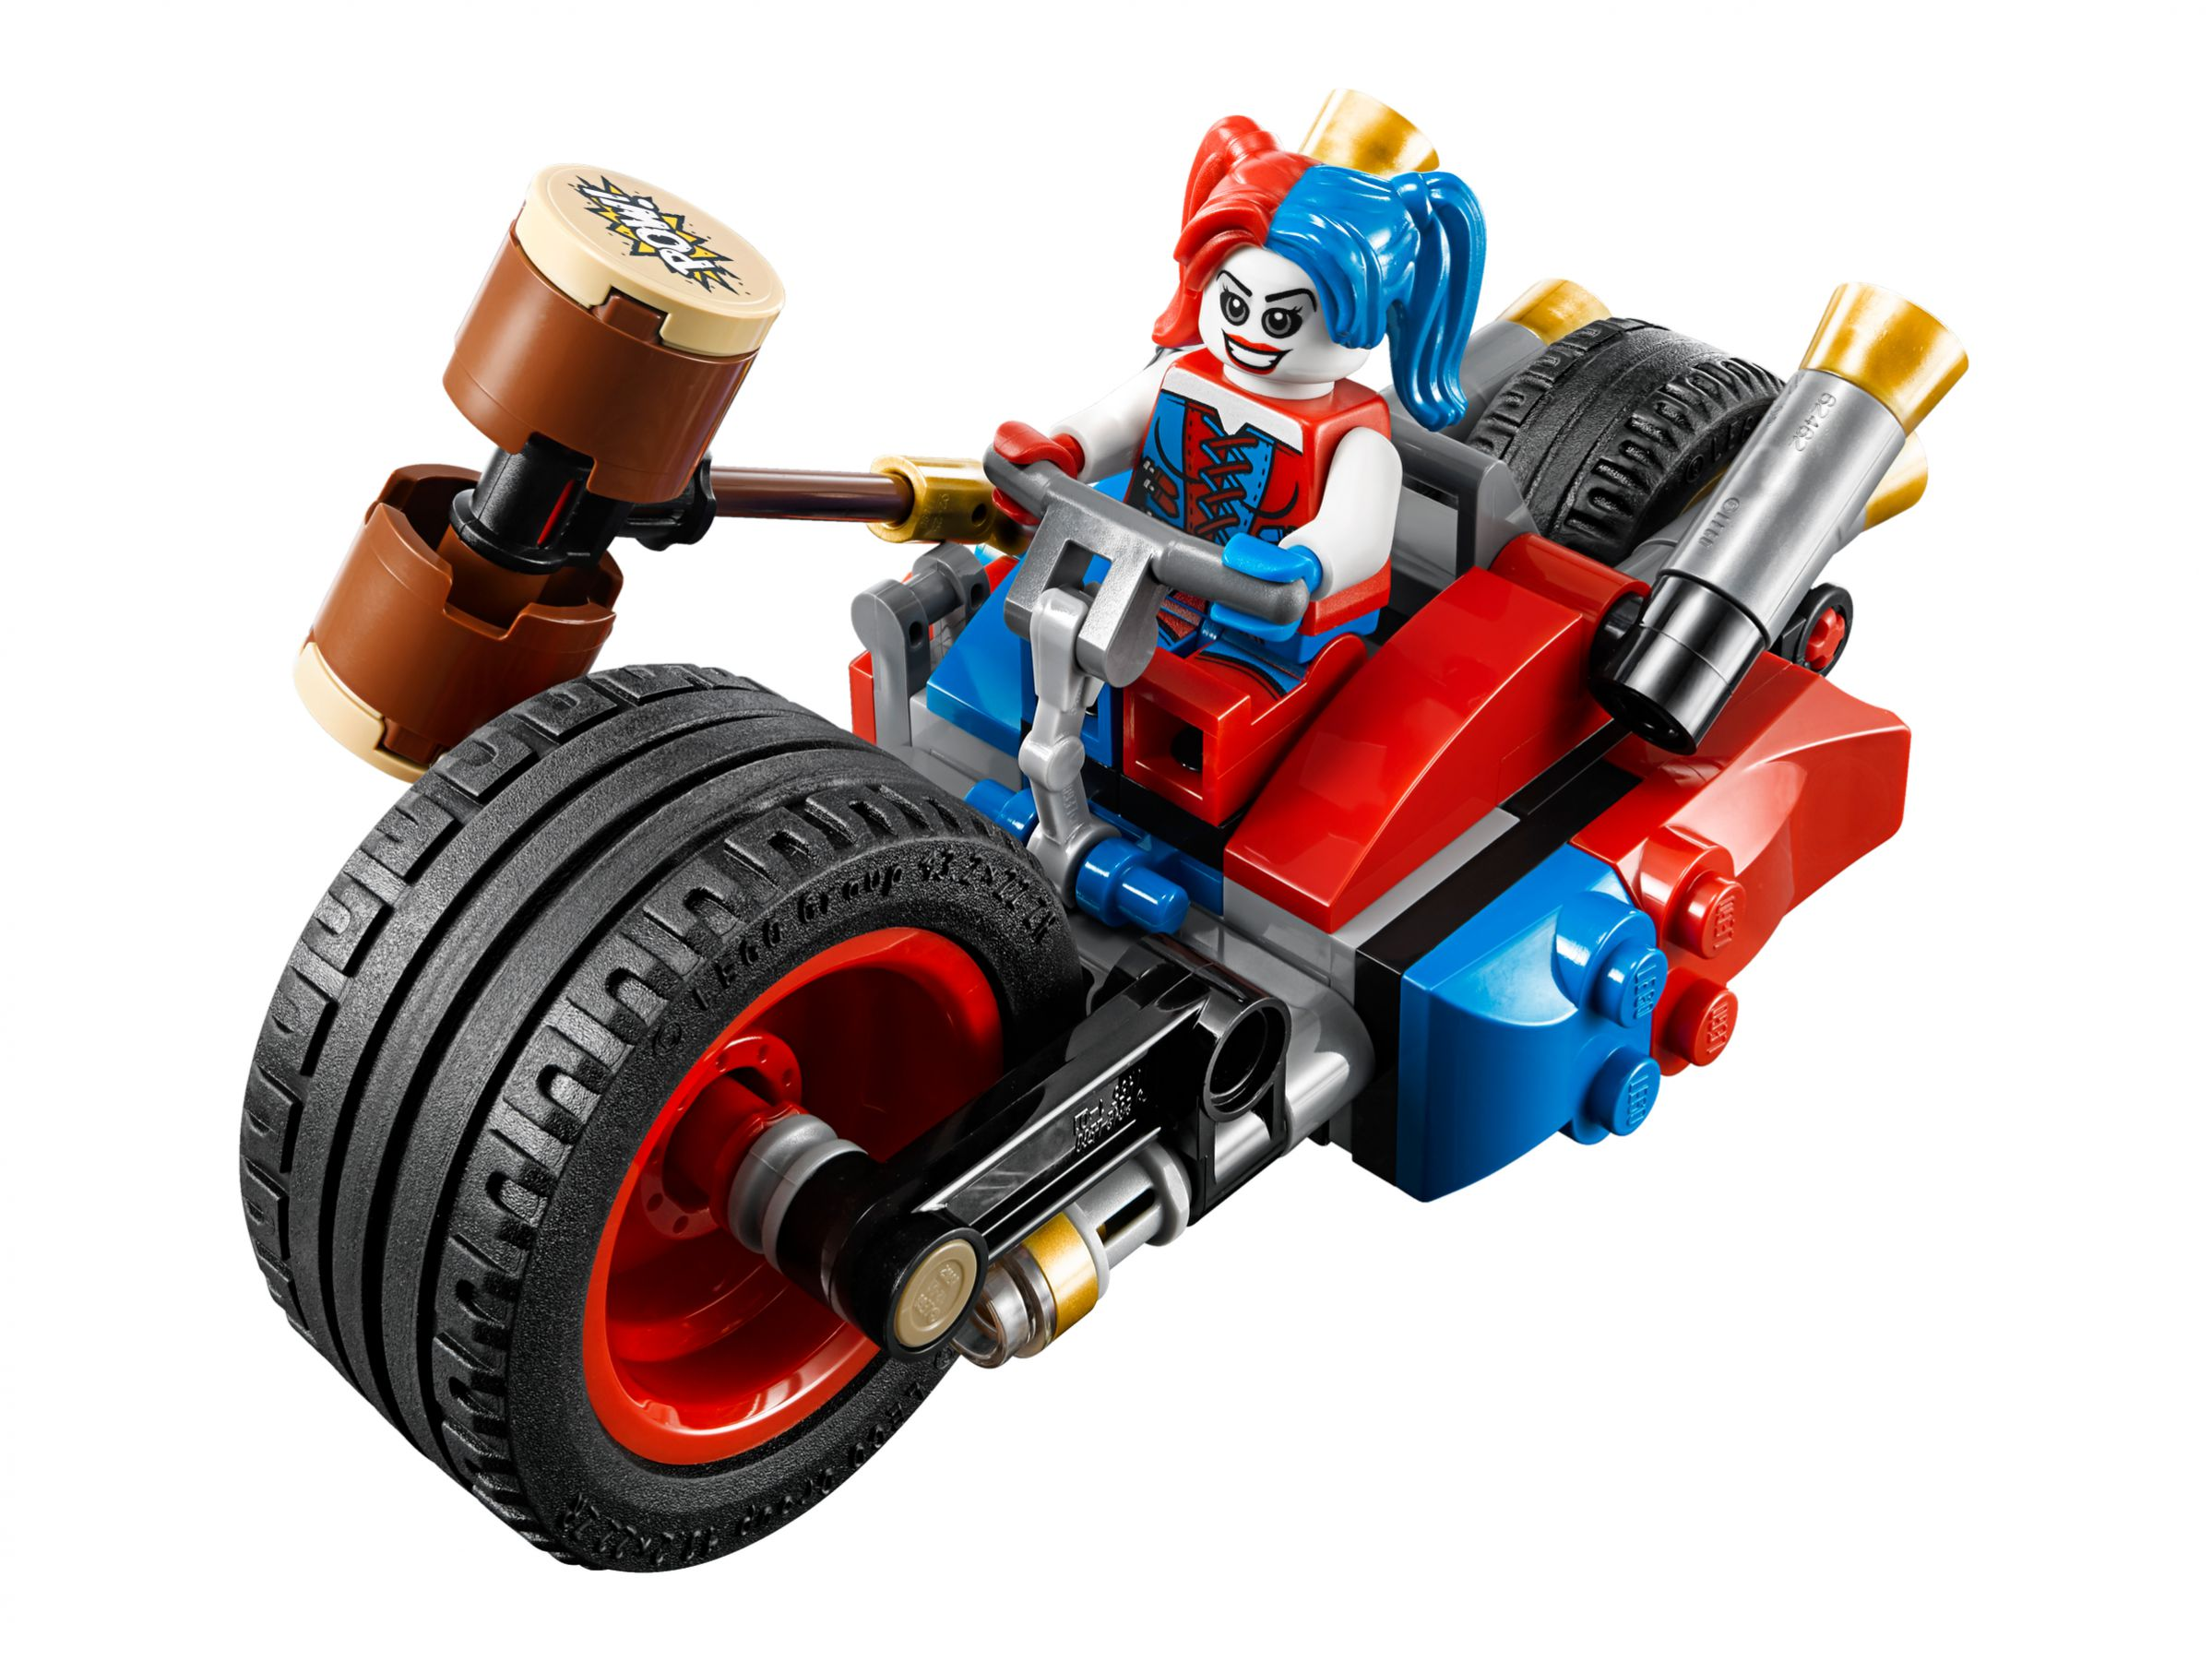 LEGO Super Heroes 76053 Batman™: Batcycle-Verfolgungsjagd in Gotham City LEGO_76053_alt5.jpg